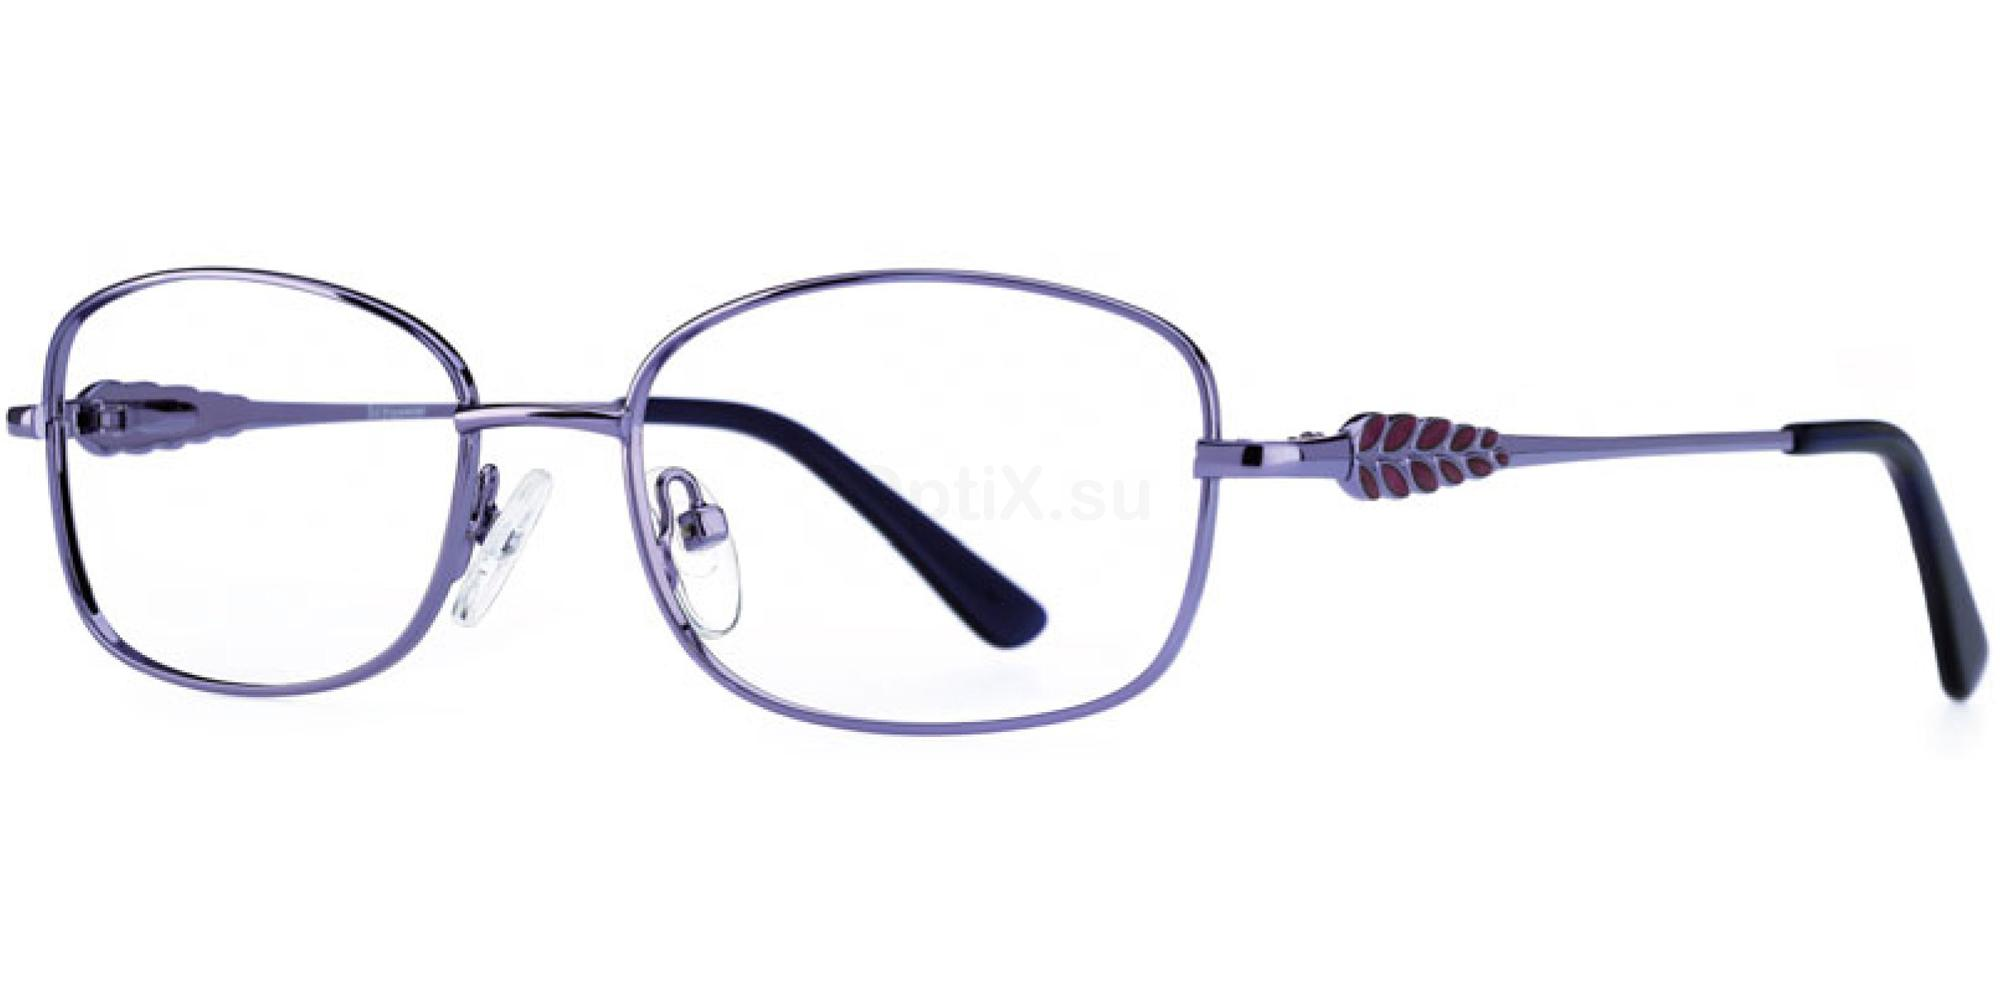 C1 Icy 773 Glasses, Icy Eyewear - Metals